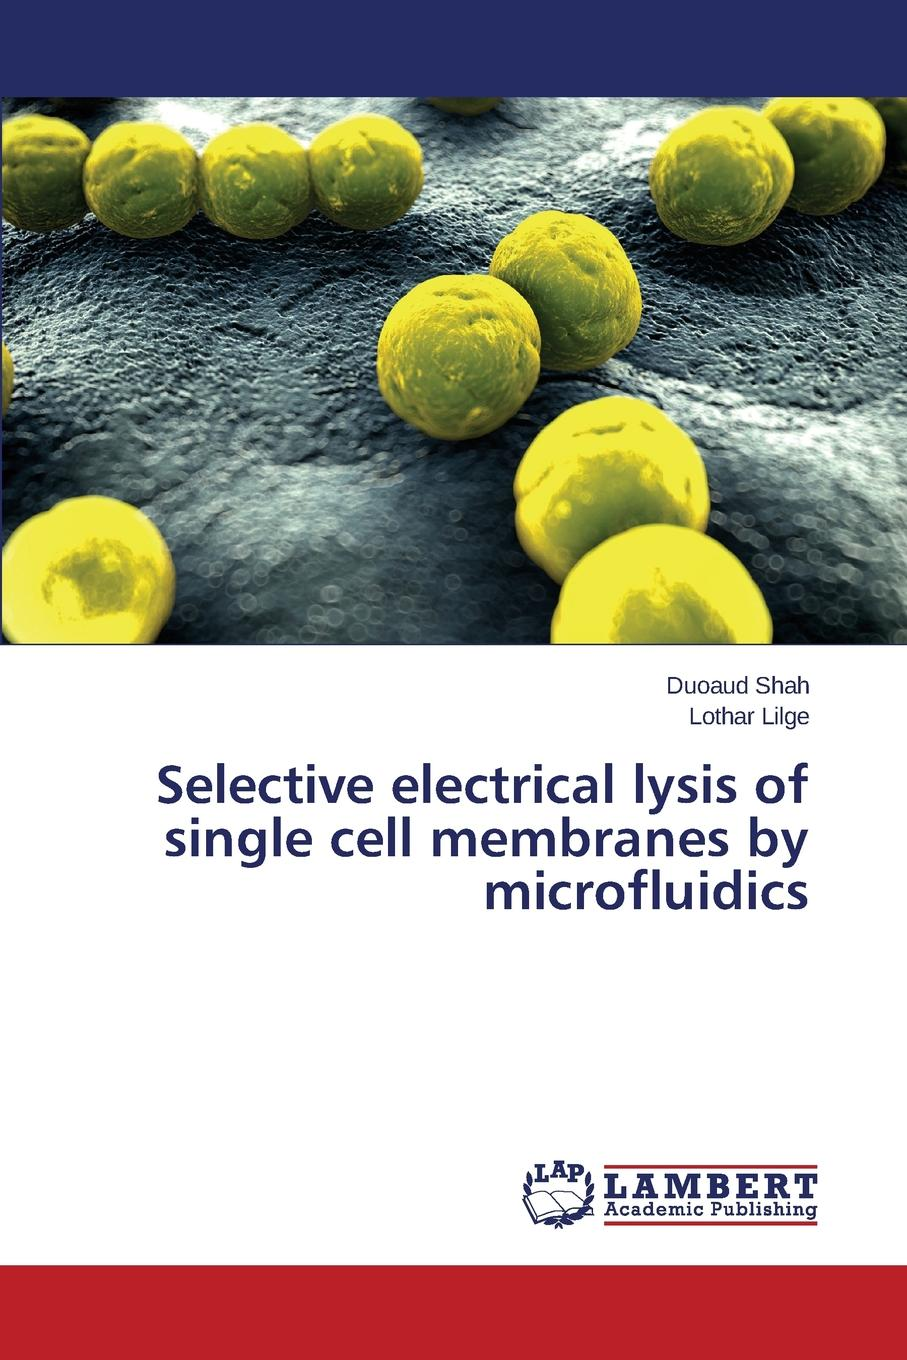 Shah Duoaud, Lilge Lothar Selective electrical lysis of single cell membranes by microfluidics high quality can wireless remote touch wall switch uk standard 2 gang 1 way control light switches switches electrical china